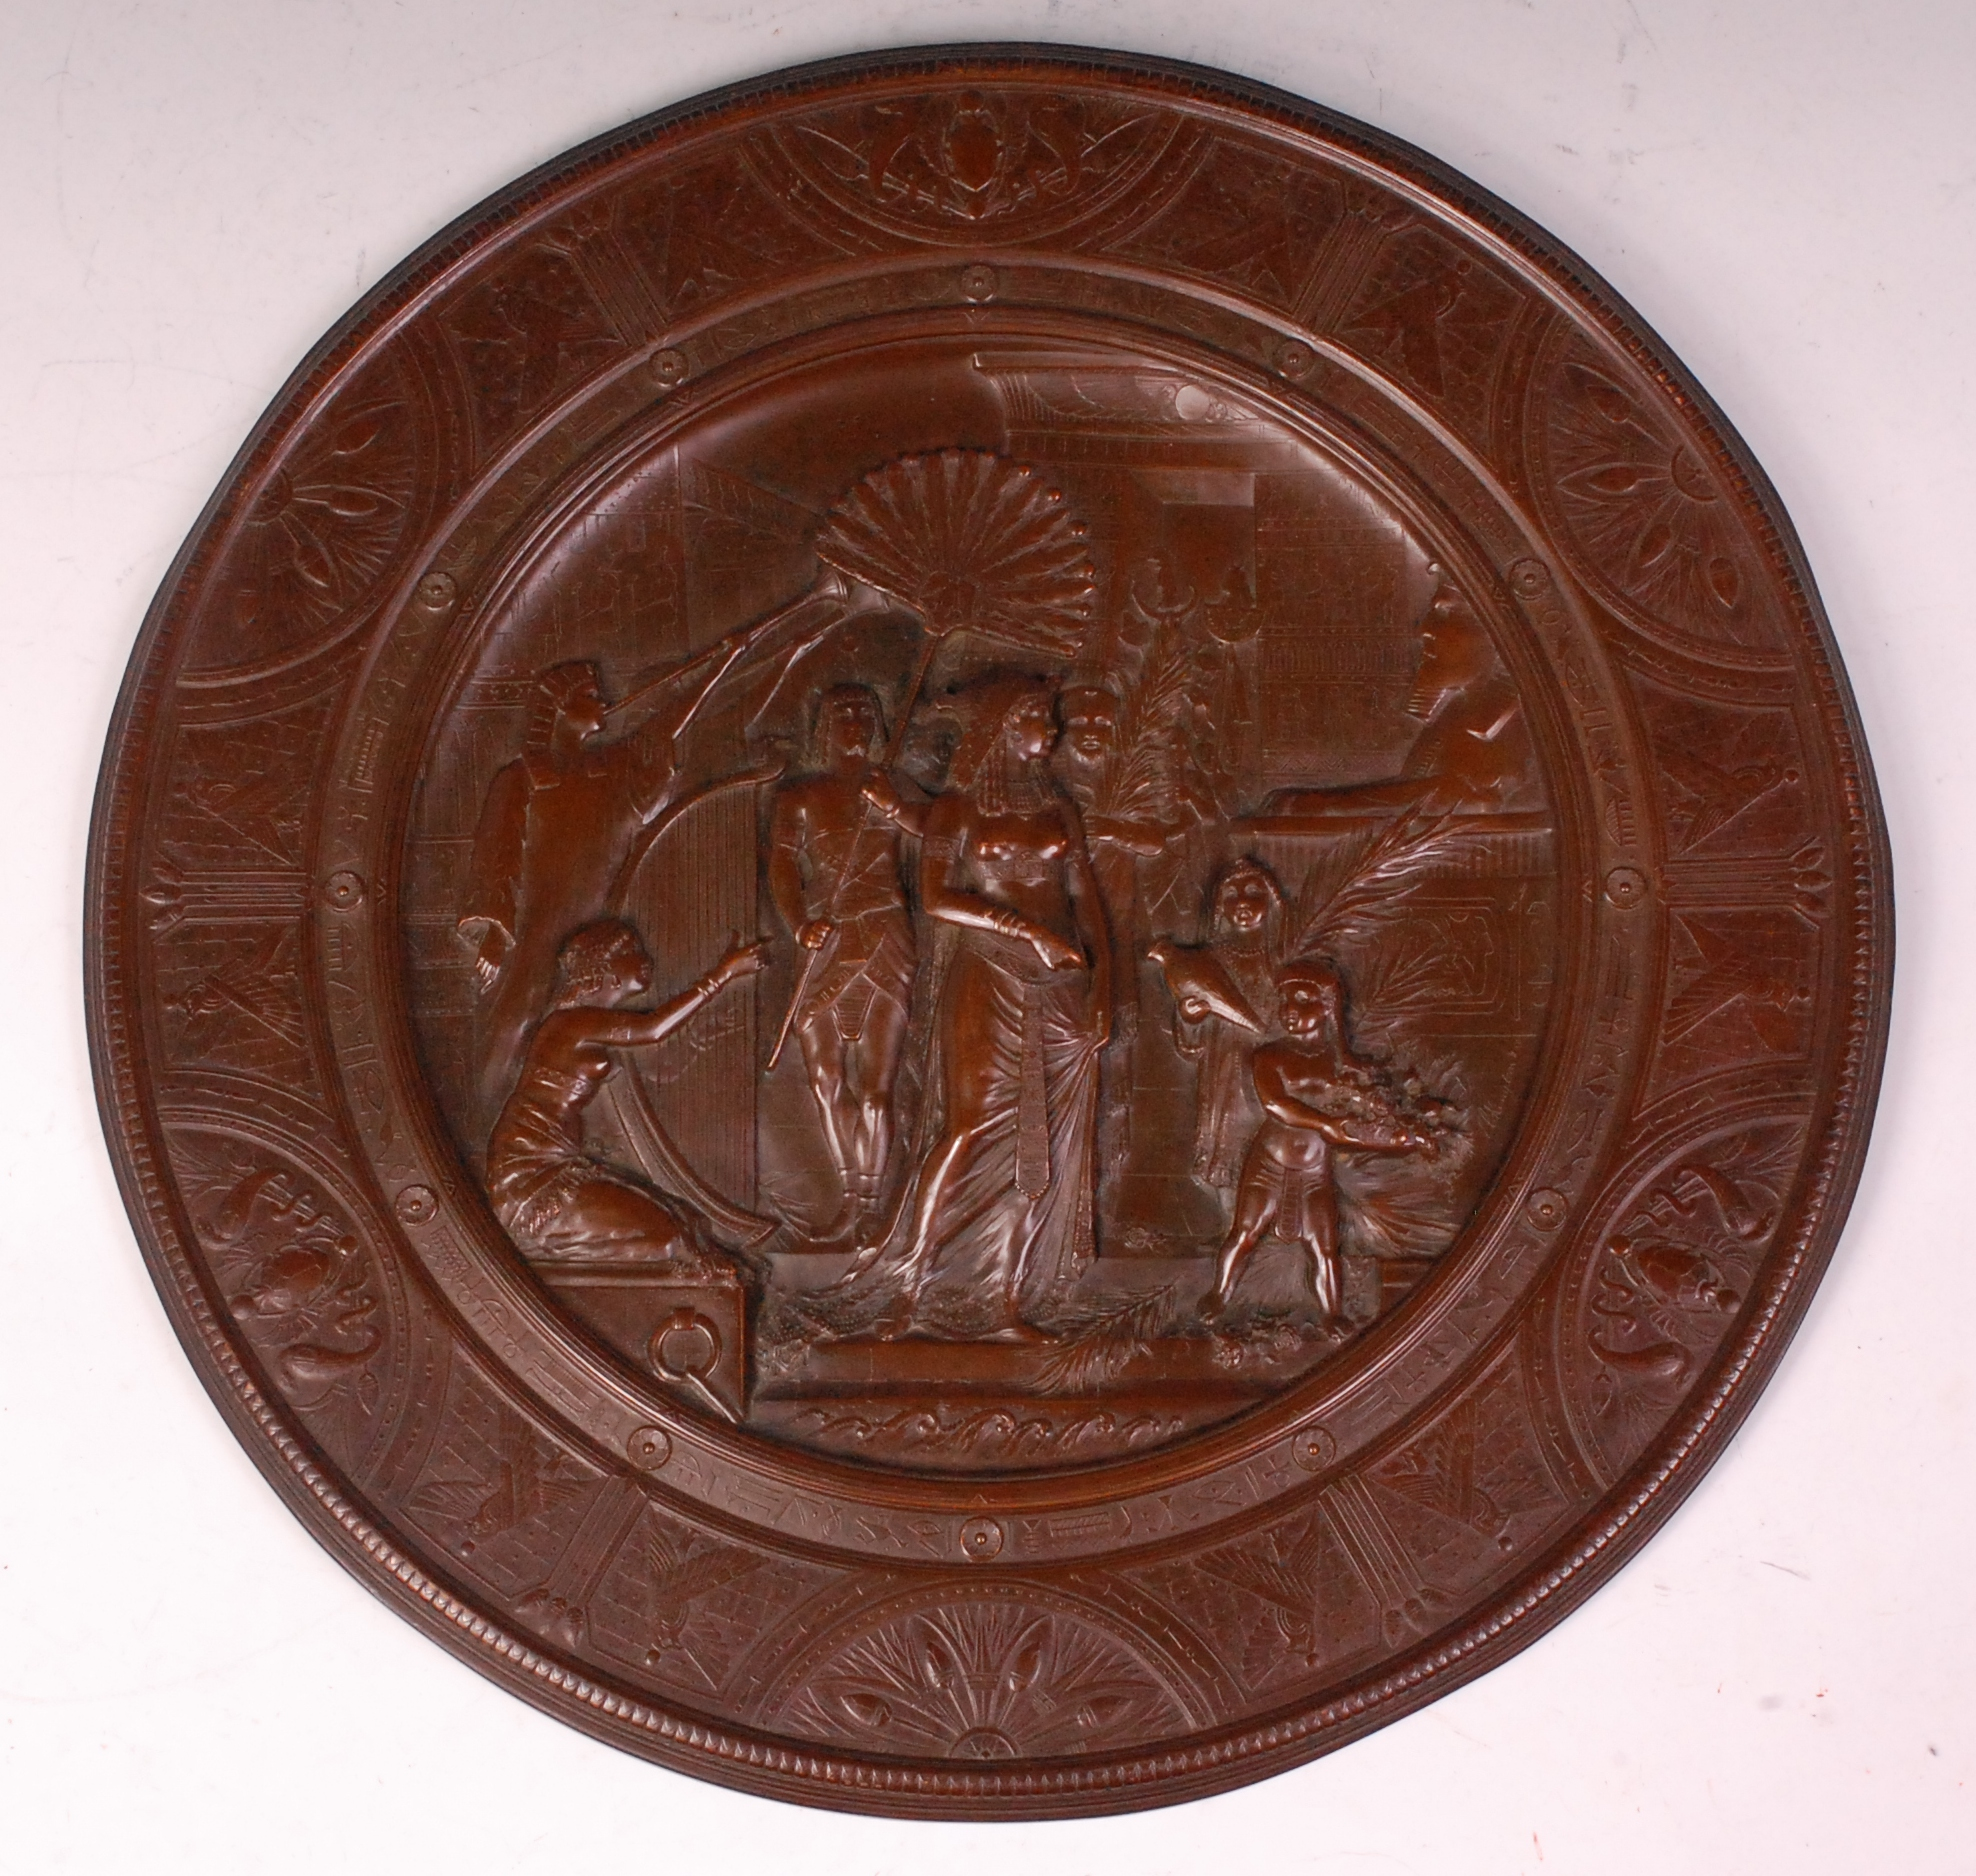 Thomas Spall for Elkington & Co - A late 19th century heavily embossed copper circular wall plaqu